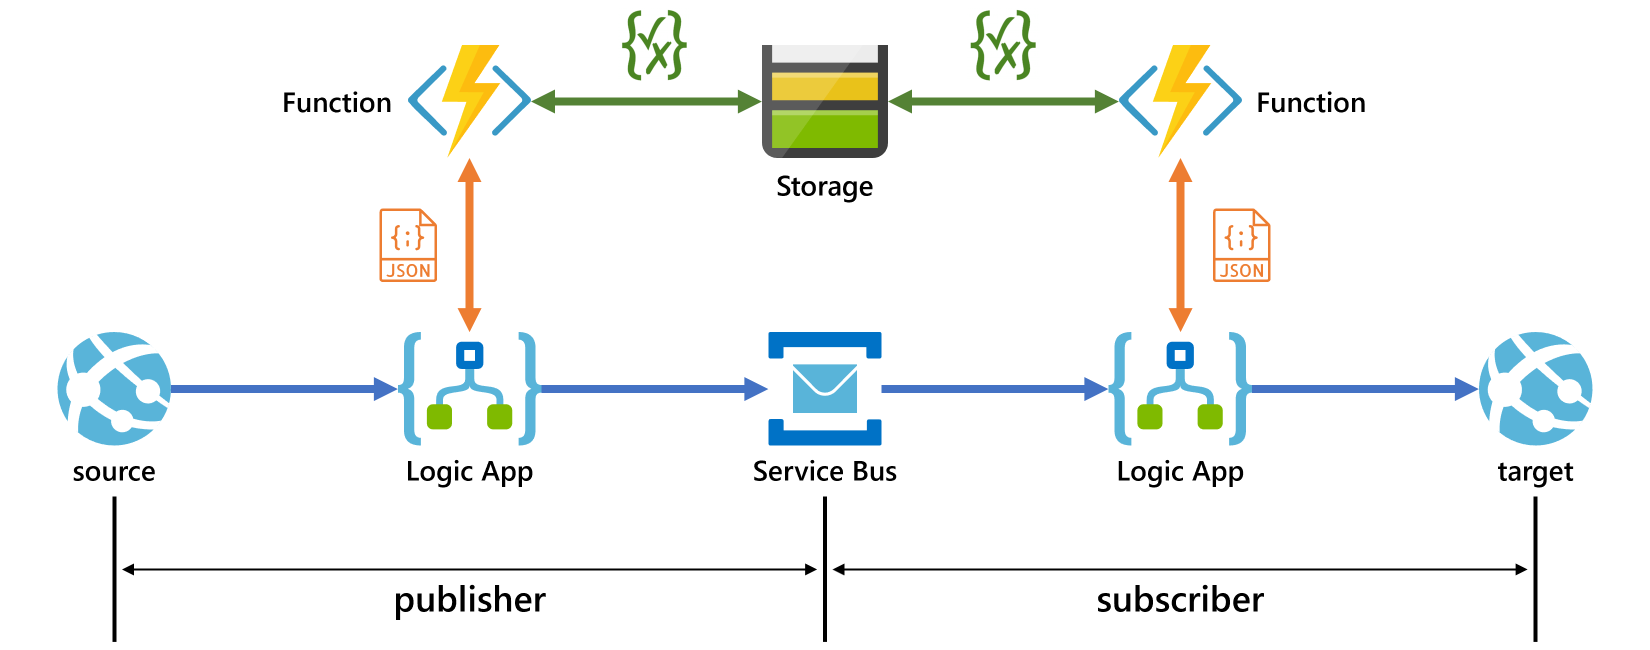 Diagram Implementing Pub/Sub Pattern with Azure Logic Apps and Service Bus, and Azure Storage and Function App